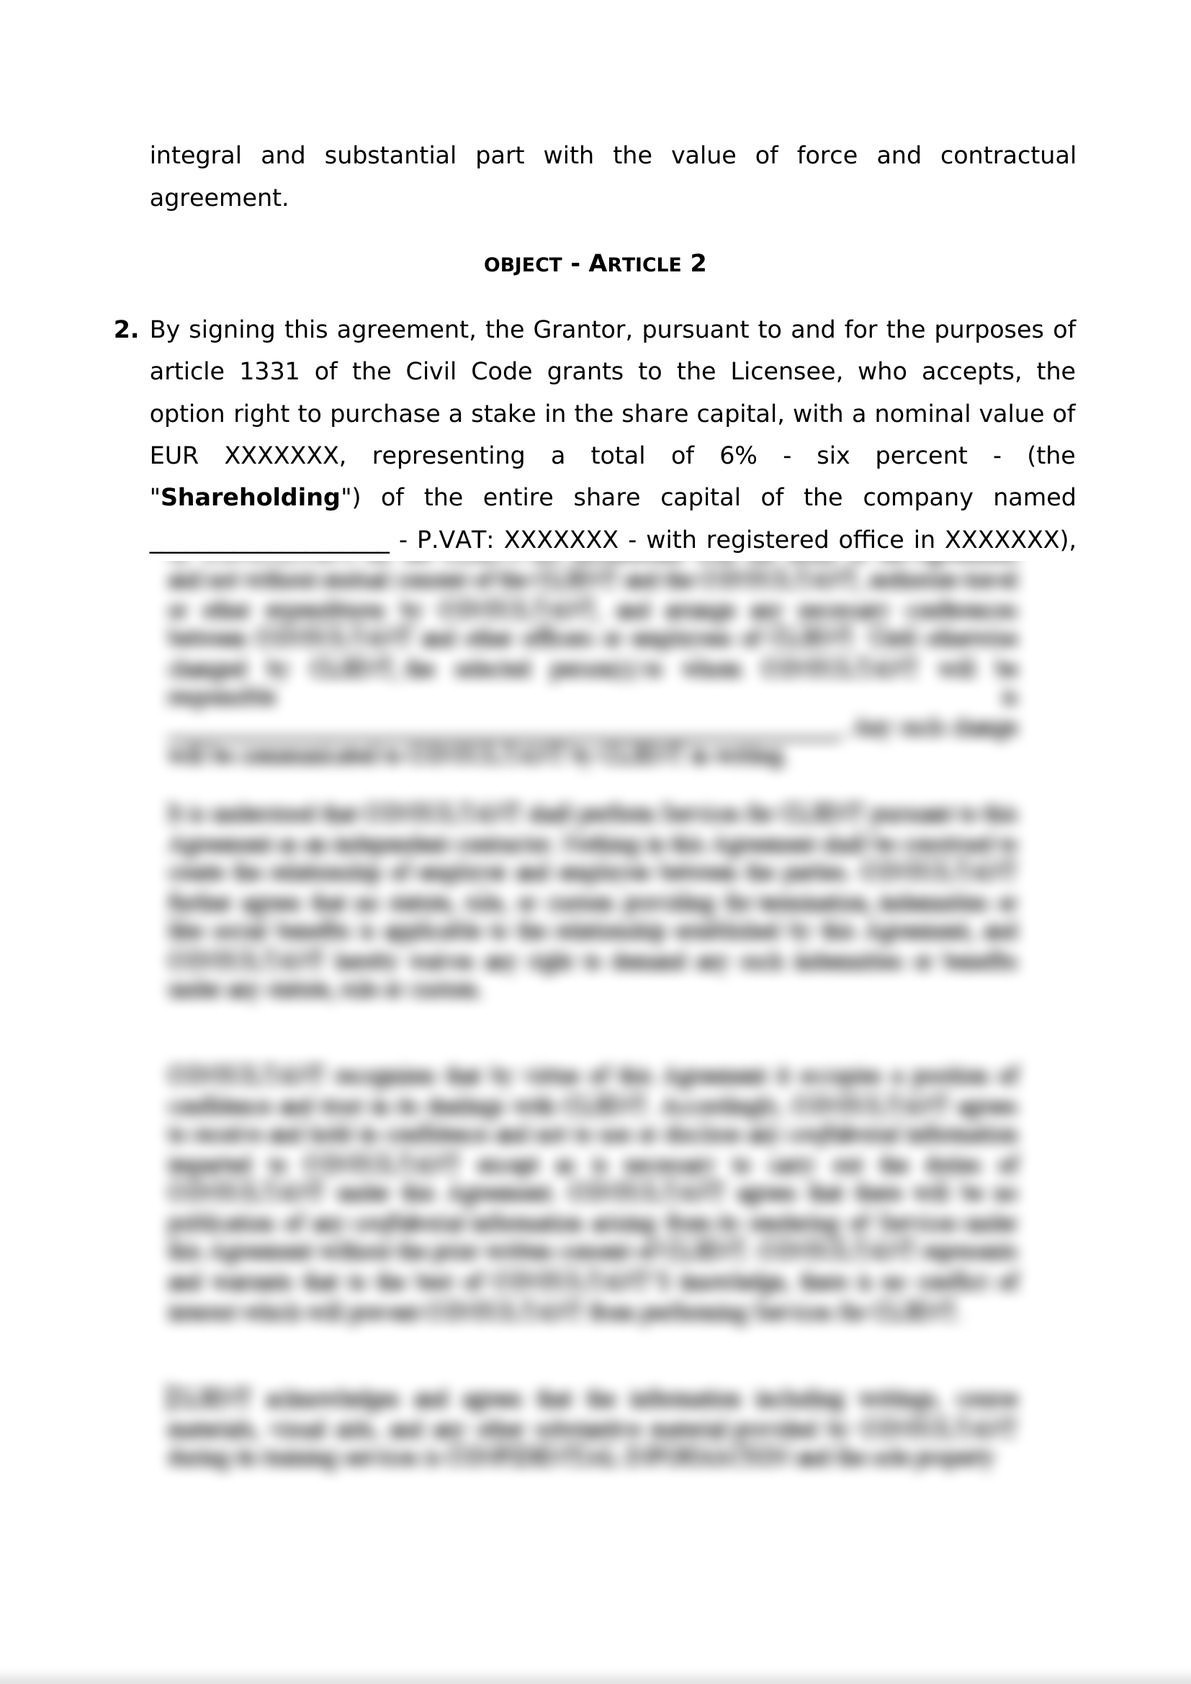 Agreement for the granting of purchase option rights-1